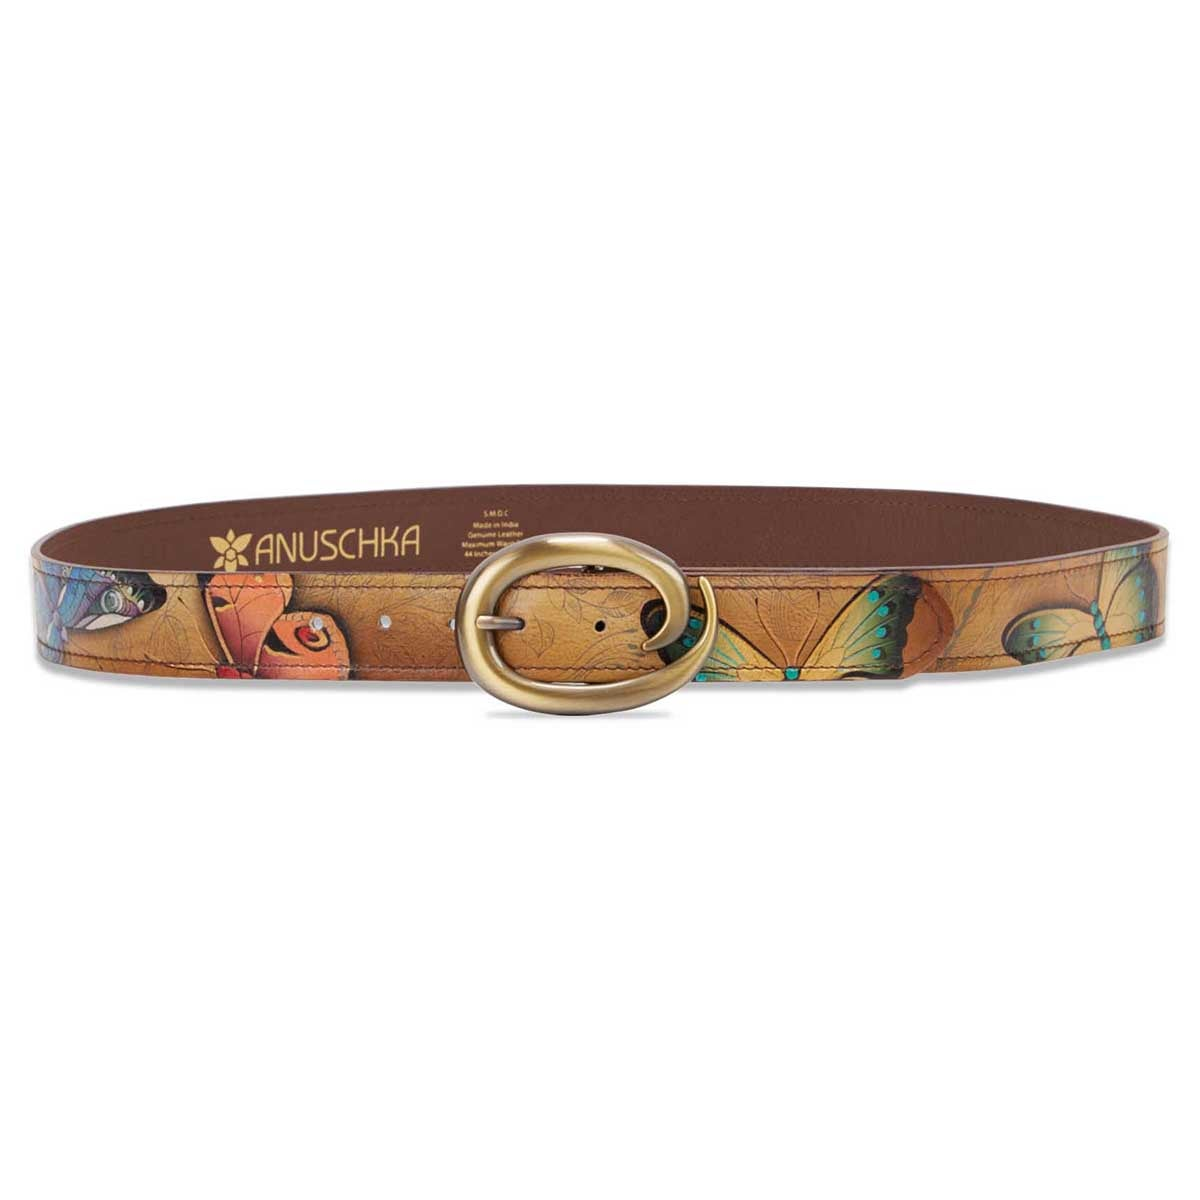 Painted lthr Earth Song adjustable belt